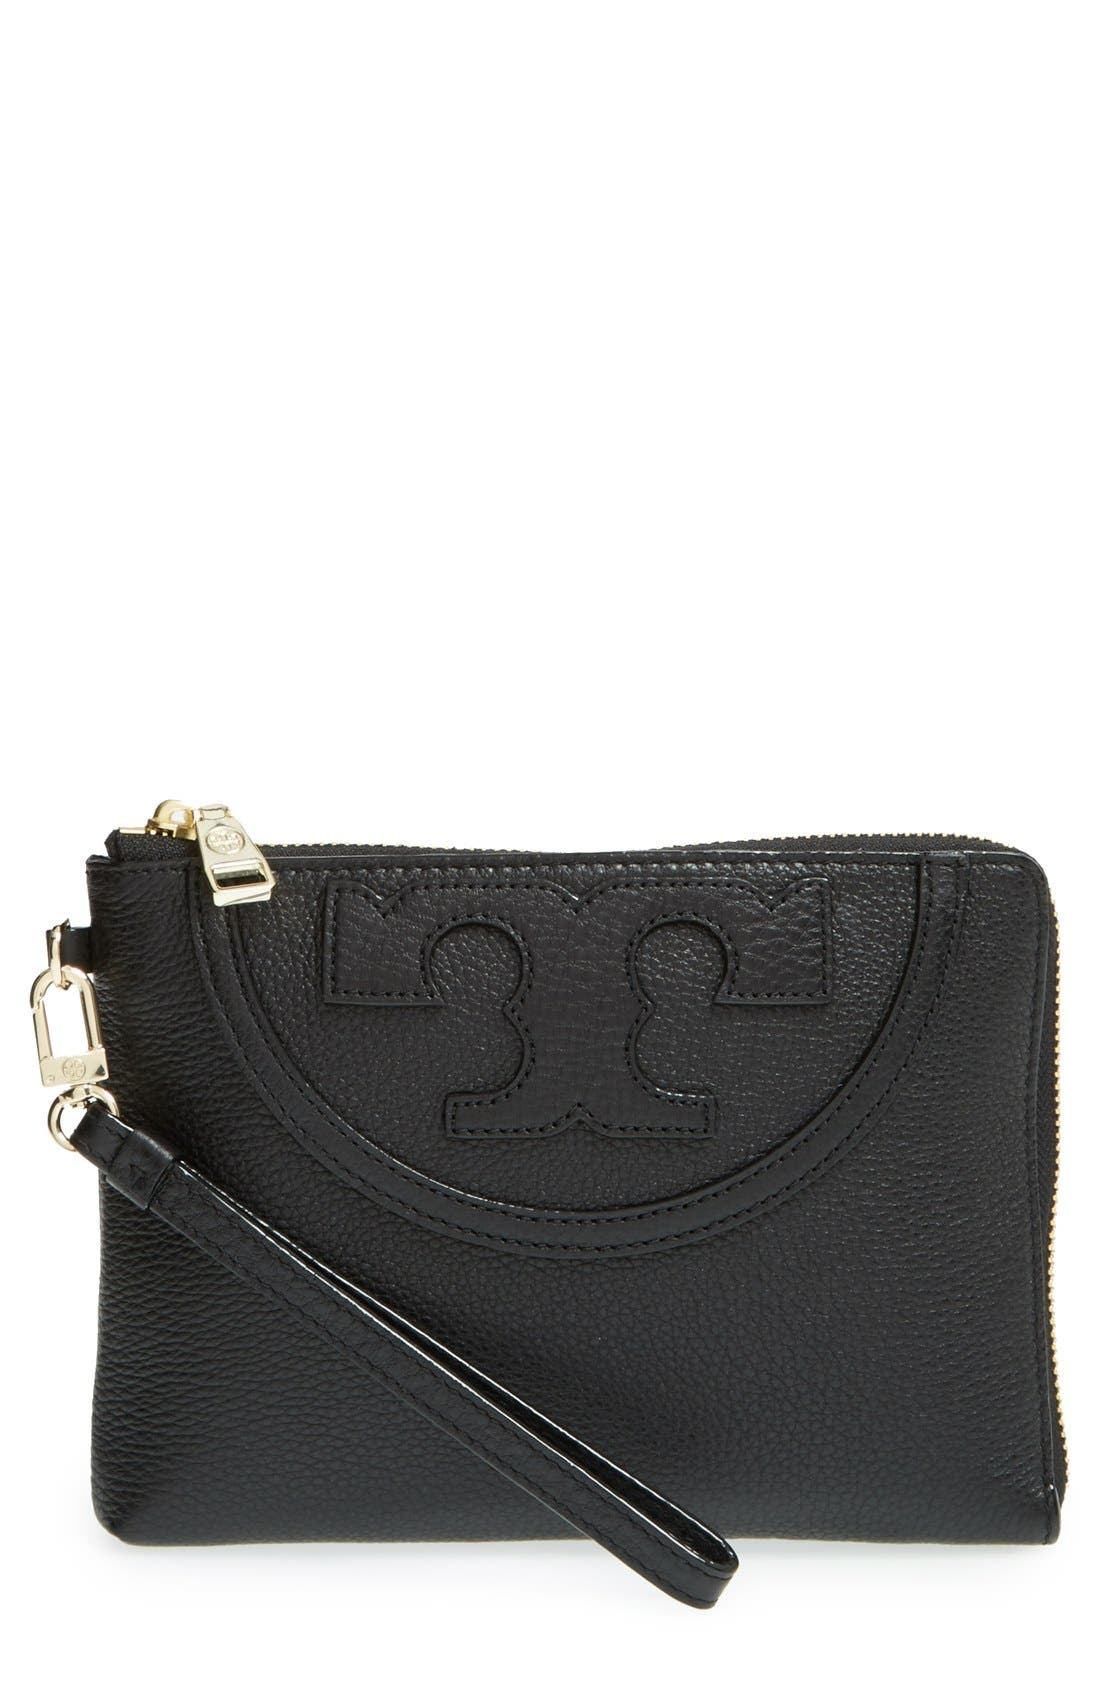 'Large All-T' Leather Wristlet, Main, color, 001